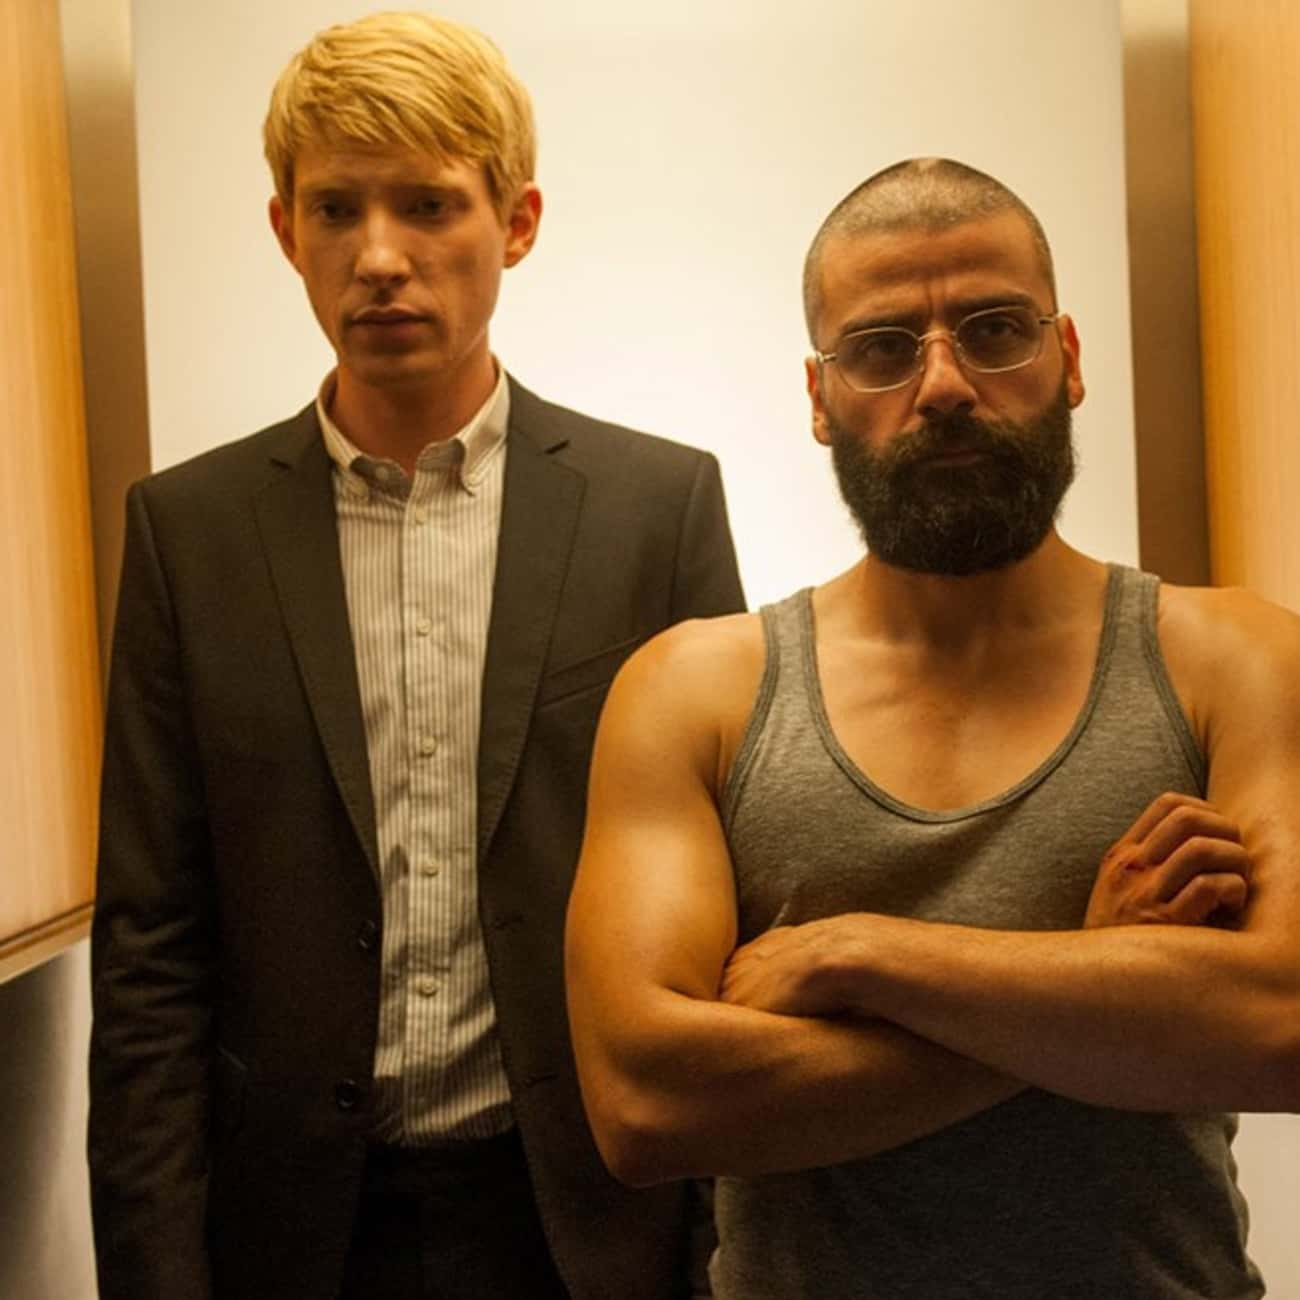 You're Freaked Out is listed (or ranked) 3 on the list Ex Machina Movie Quotes